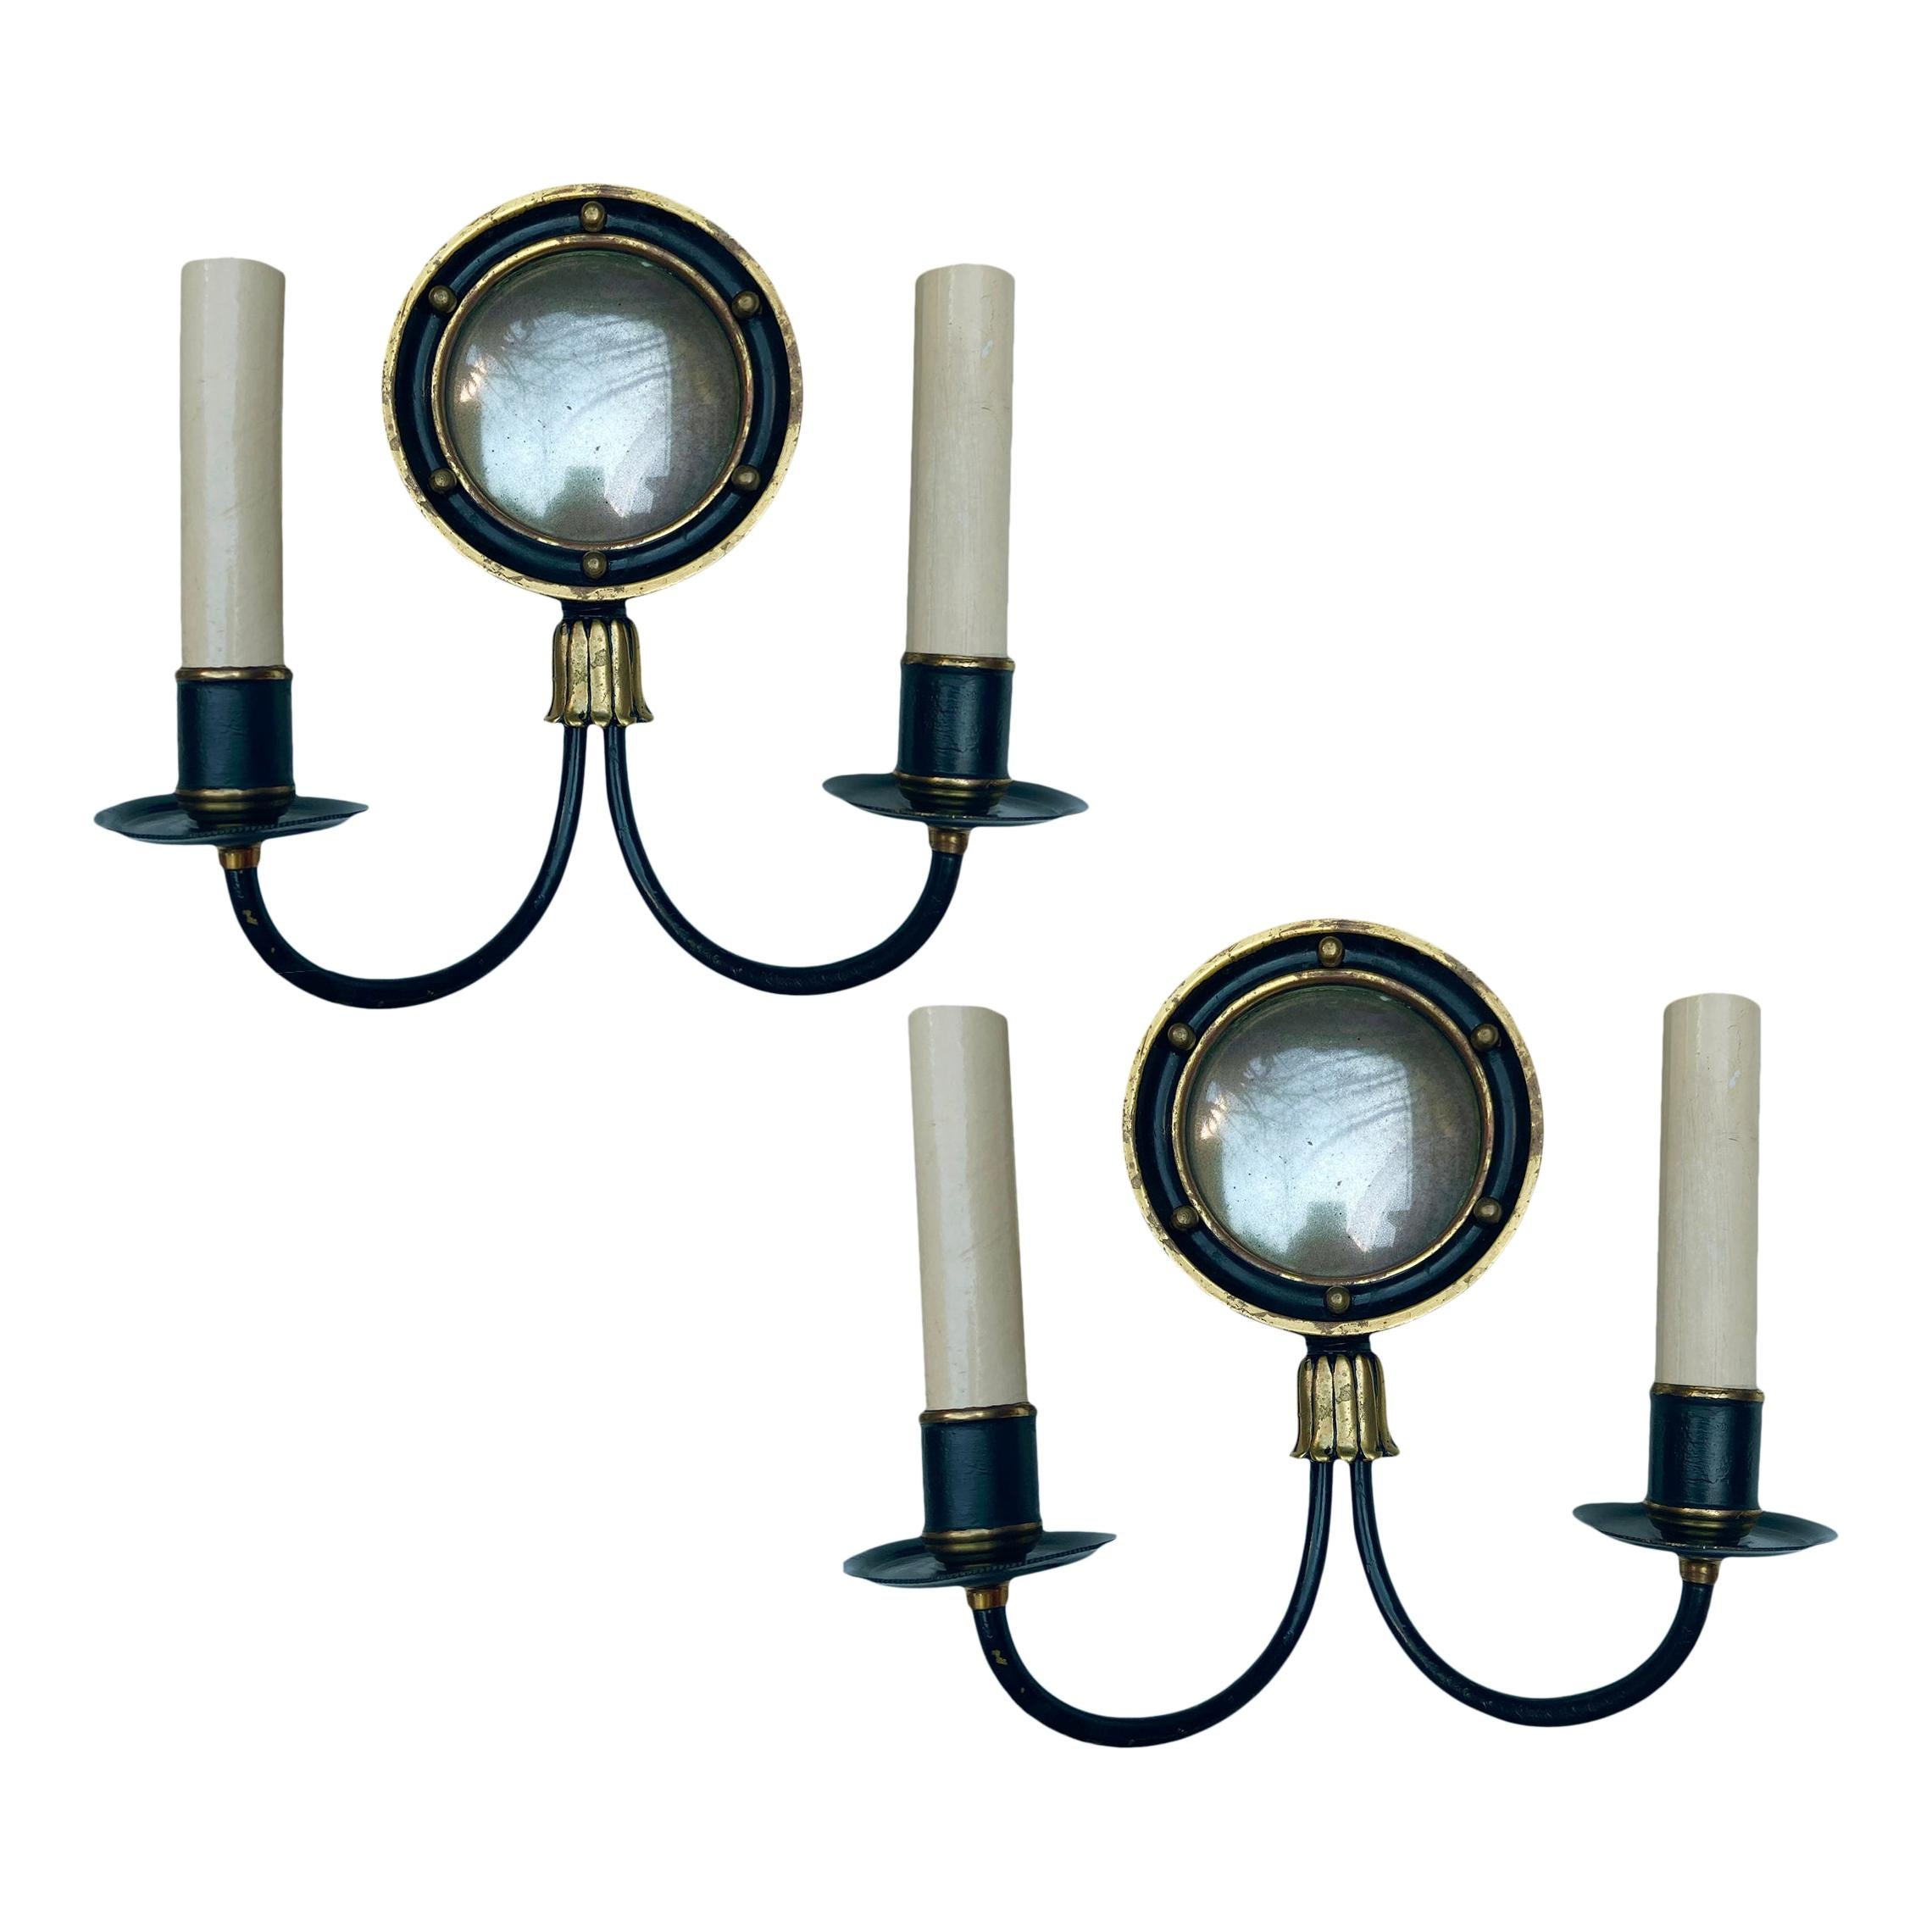 Pair of Antique Mirrored Sconces